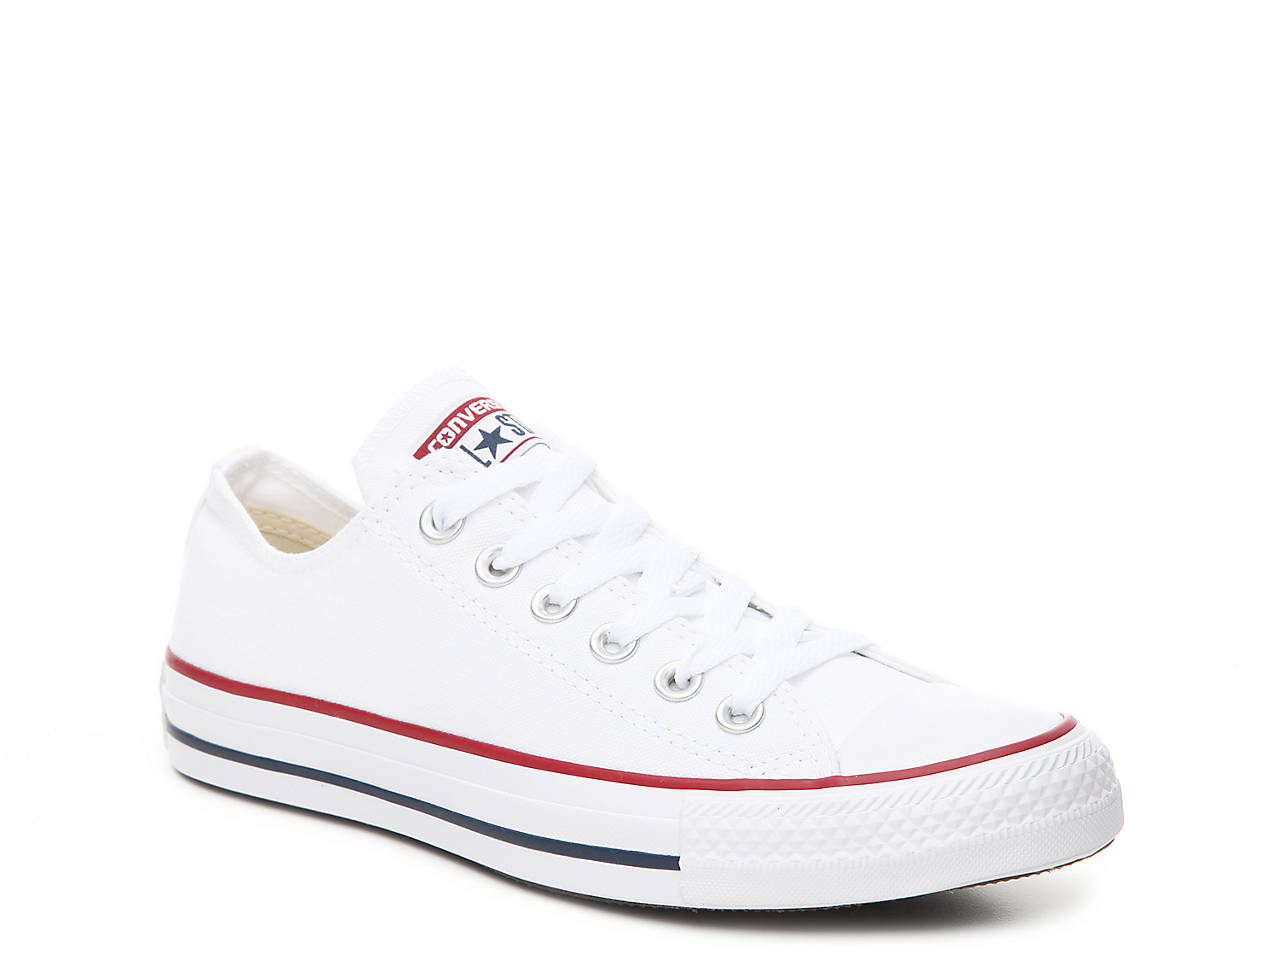 Converse Tennis Shoes Mens